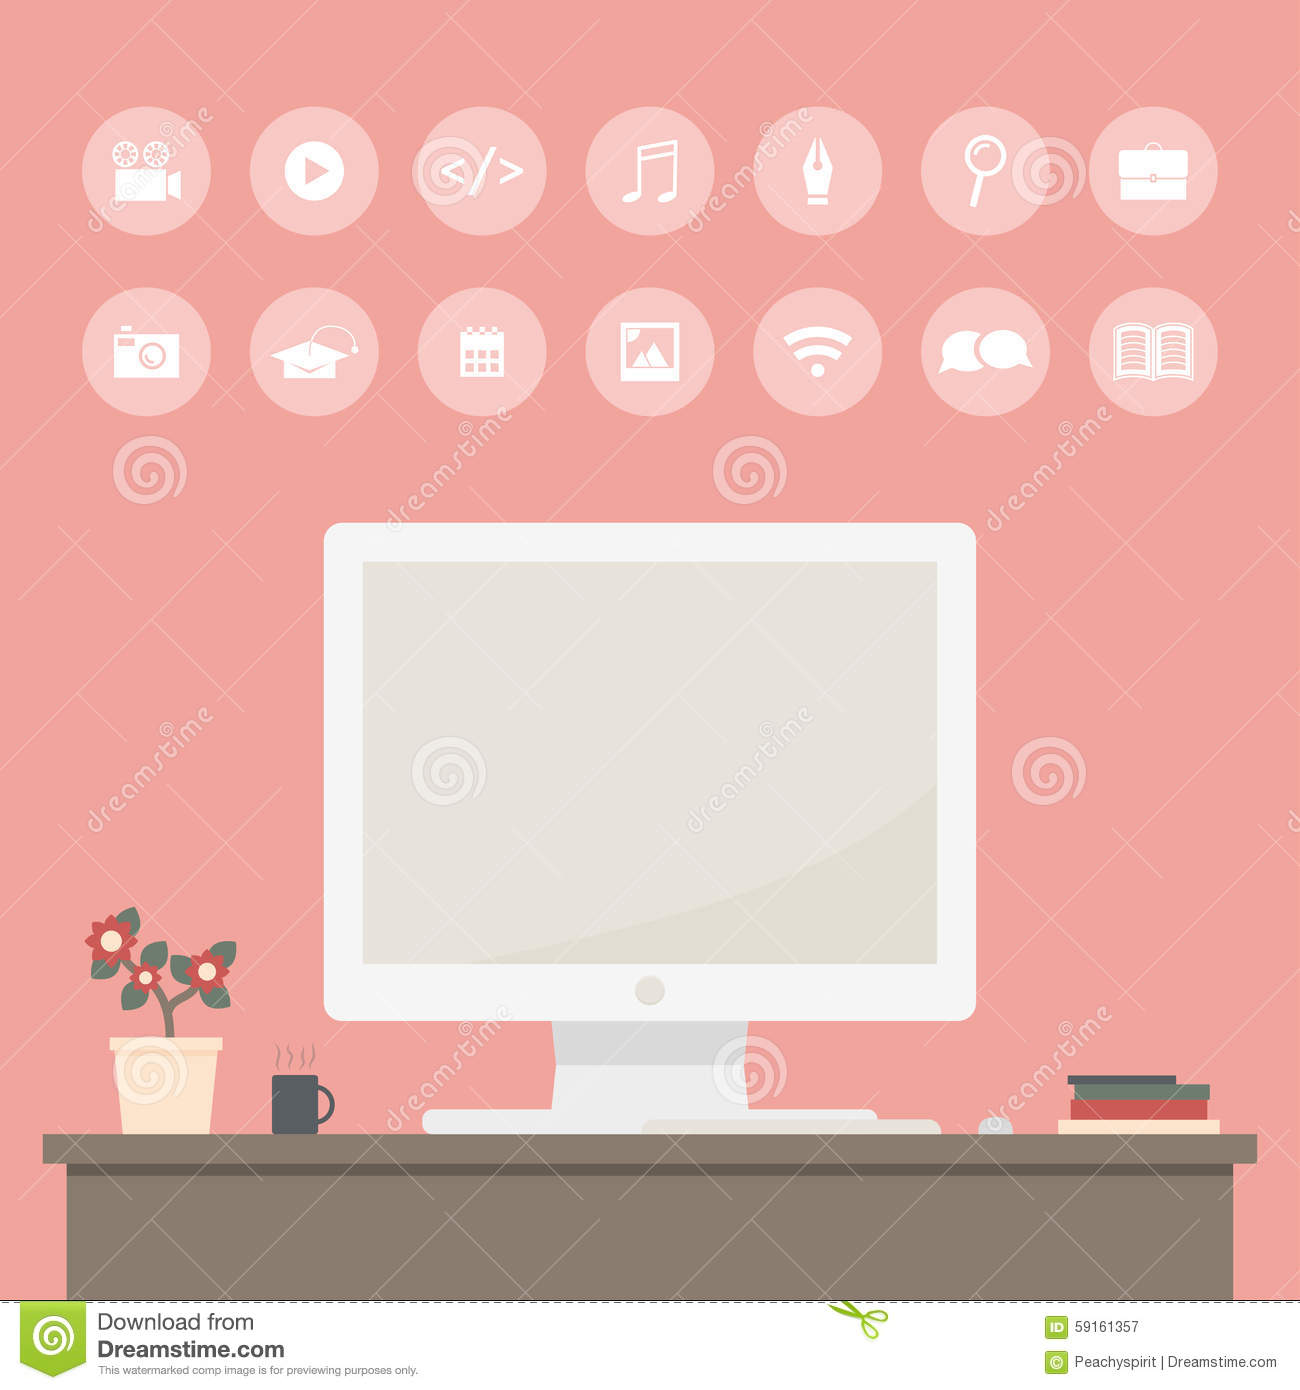 freelance infographic template icons set modern computer home office design elements flat style 59161357 senior home care business plan sample photo home design,Business Plan For Senior Home Care